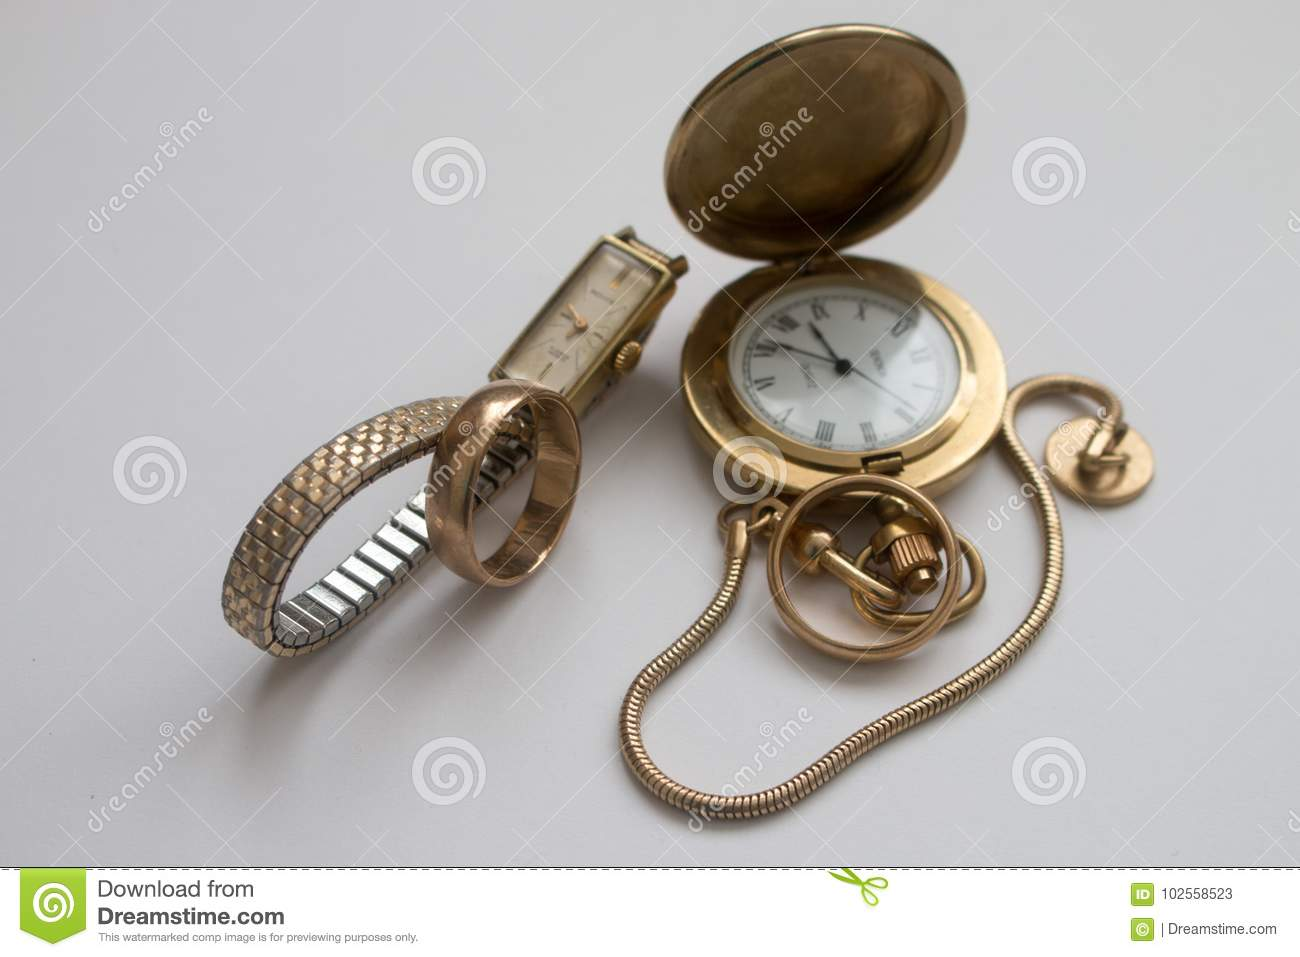 watches old mcelroy pocket by featured jerry fashion photograph my watch